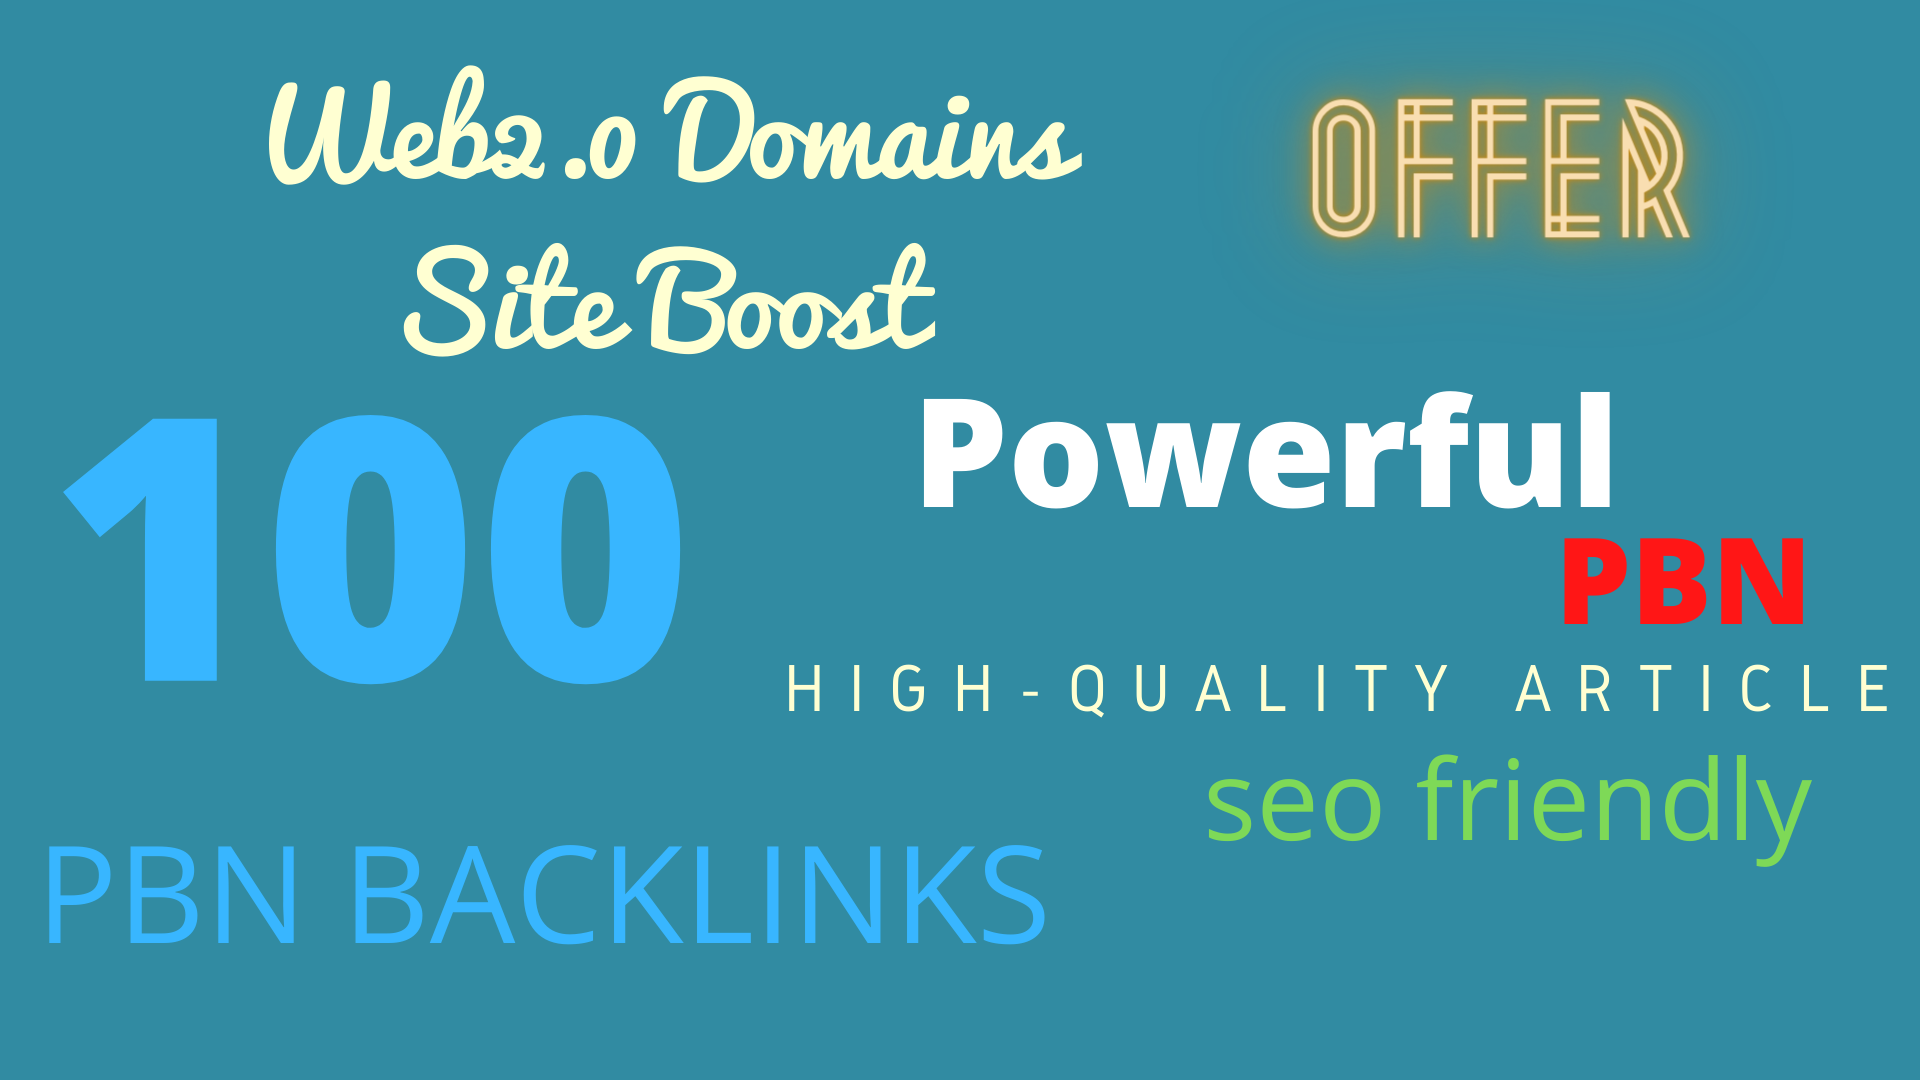 I Will build 100 PBN Back-links From Web2.0 Domains Site HQ Article Submission Blog Post